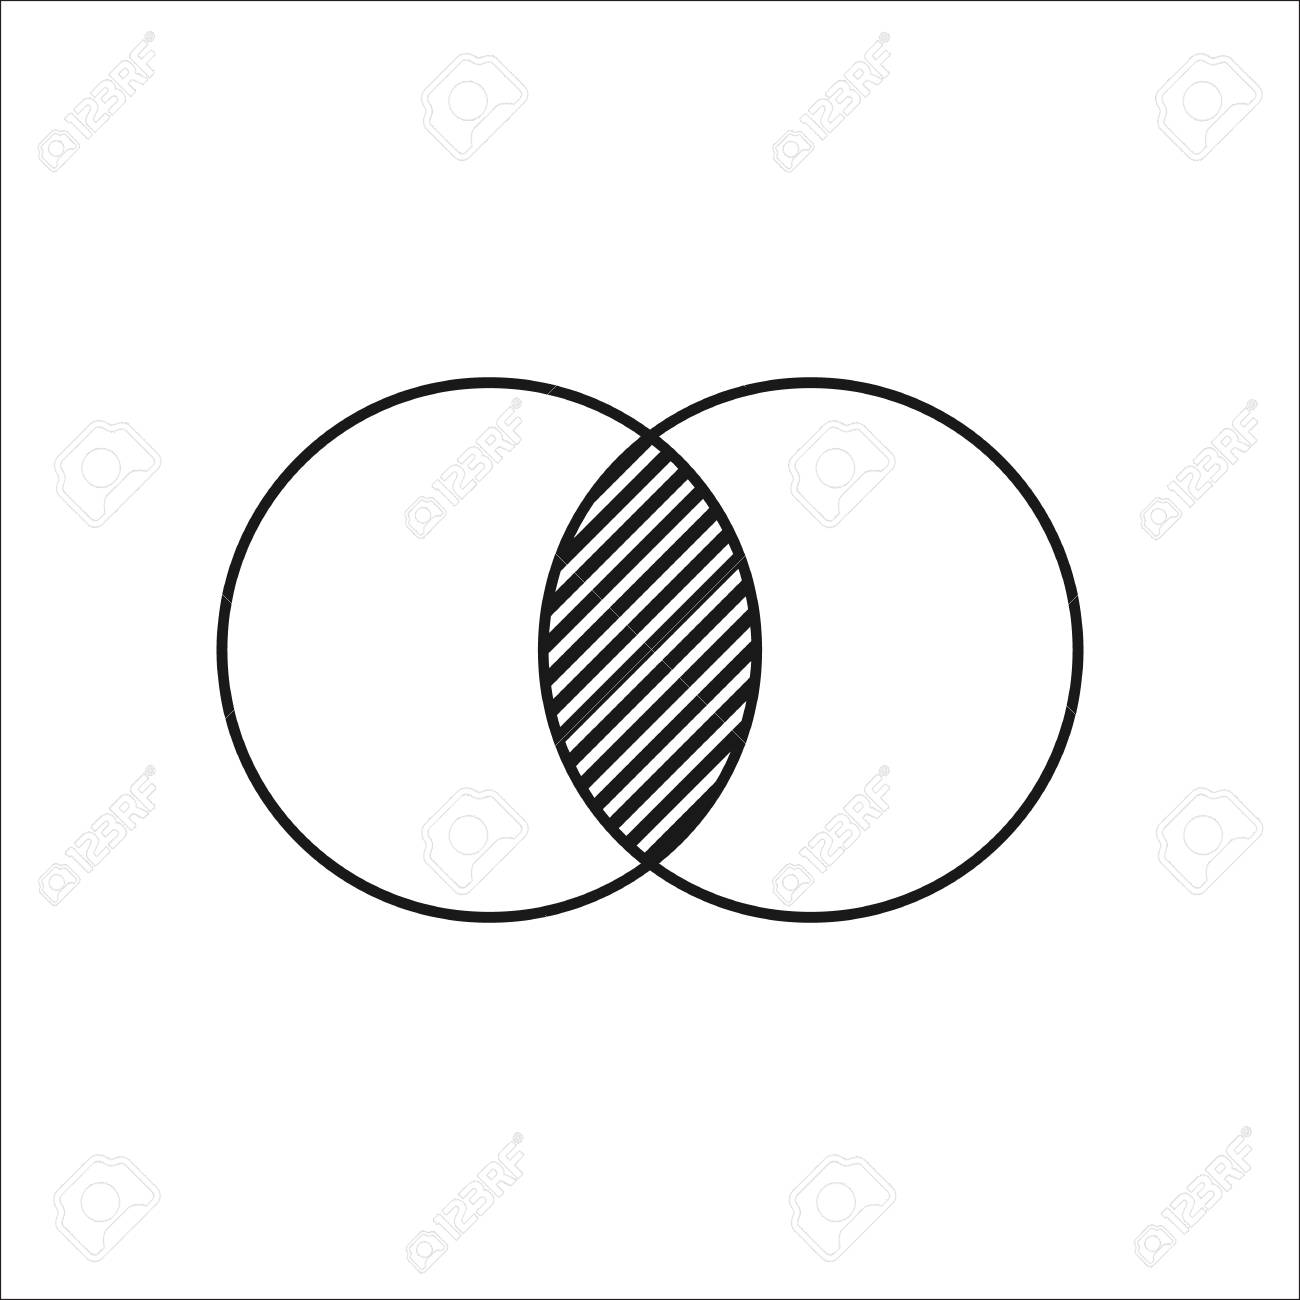 Geometry math two circles symbol sign simple icon on background